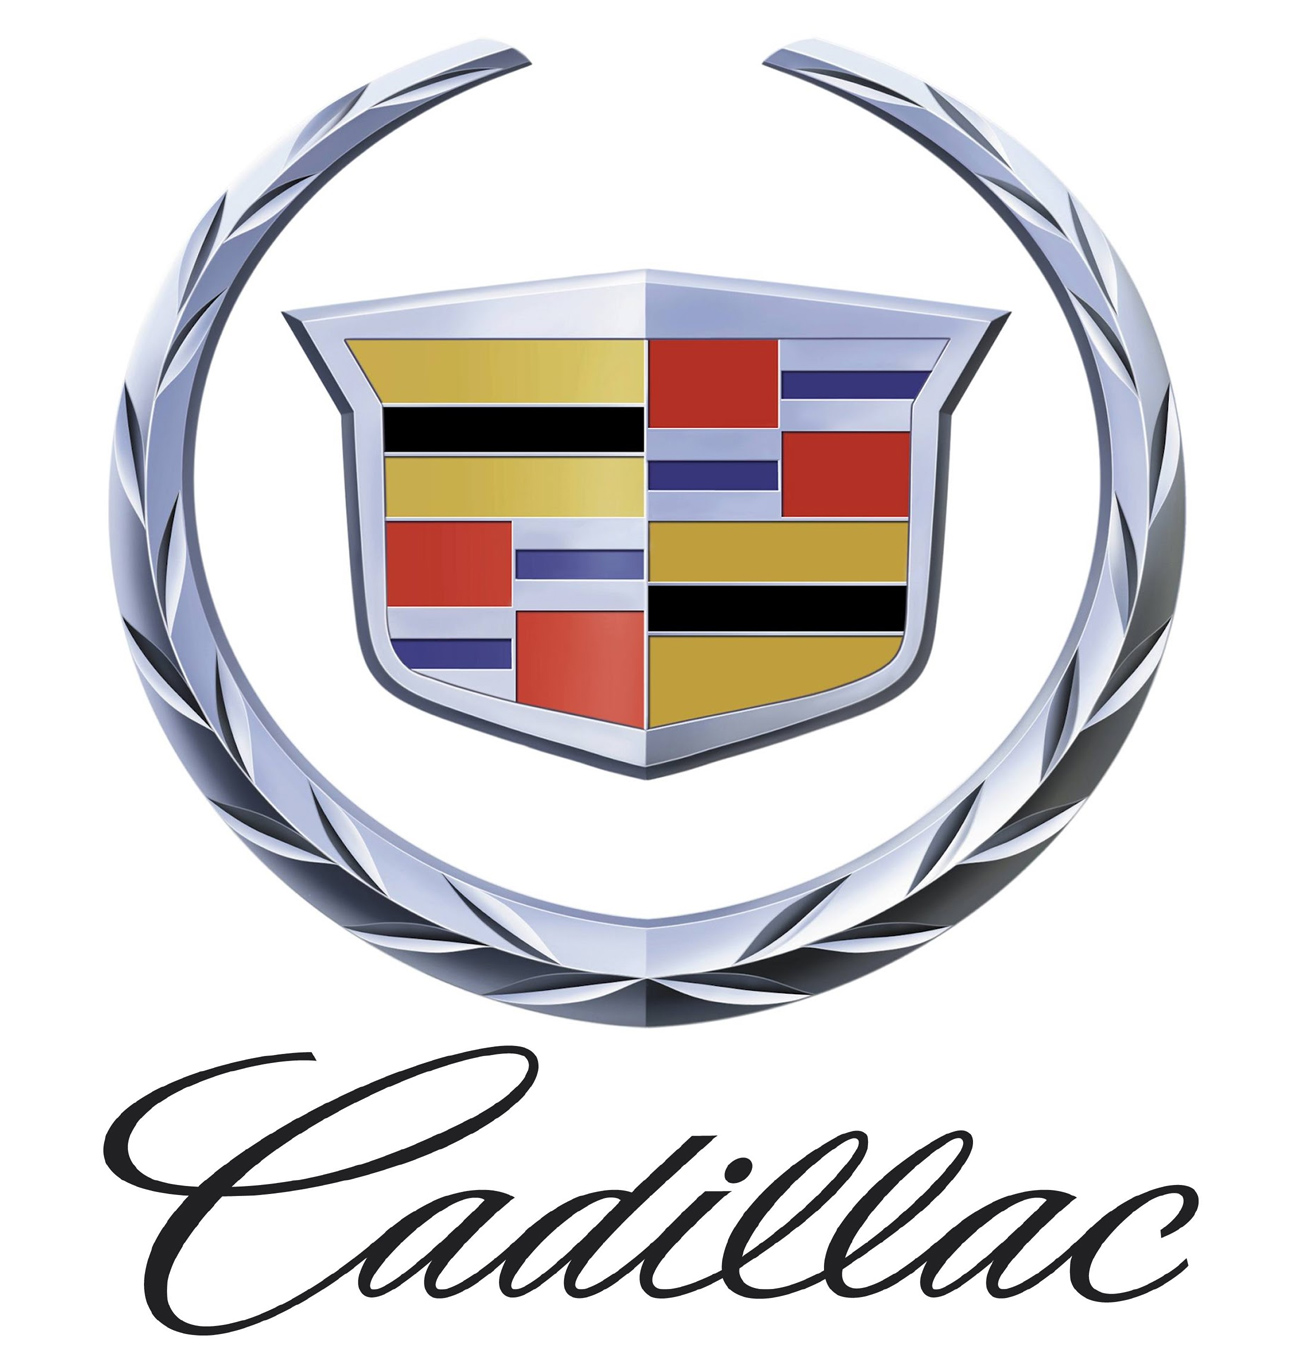 195 Cadillac Pdf Manuals Download For Free Ar Manual Wiring 472 Engine Diagram Fault Codes